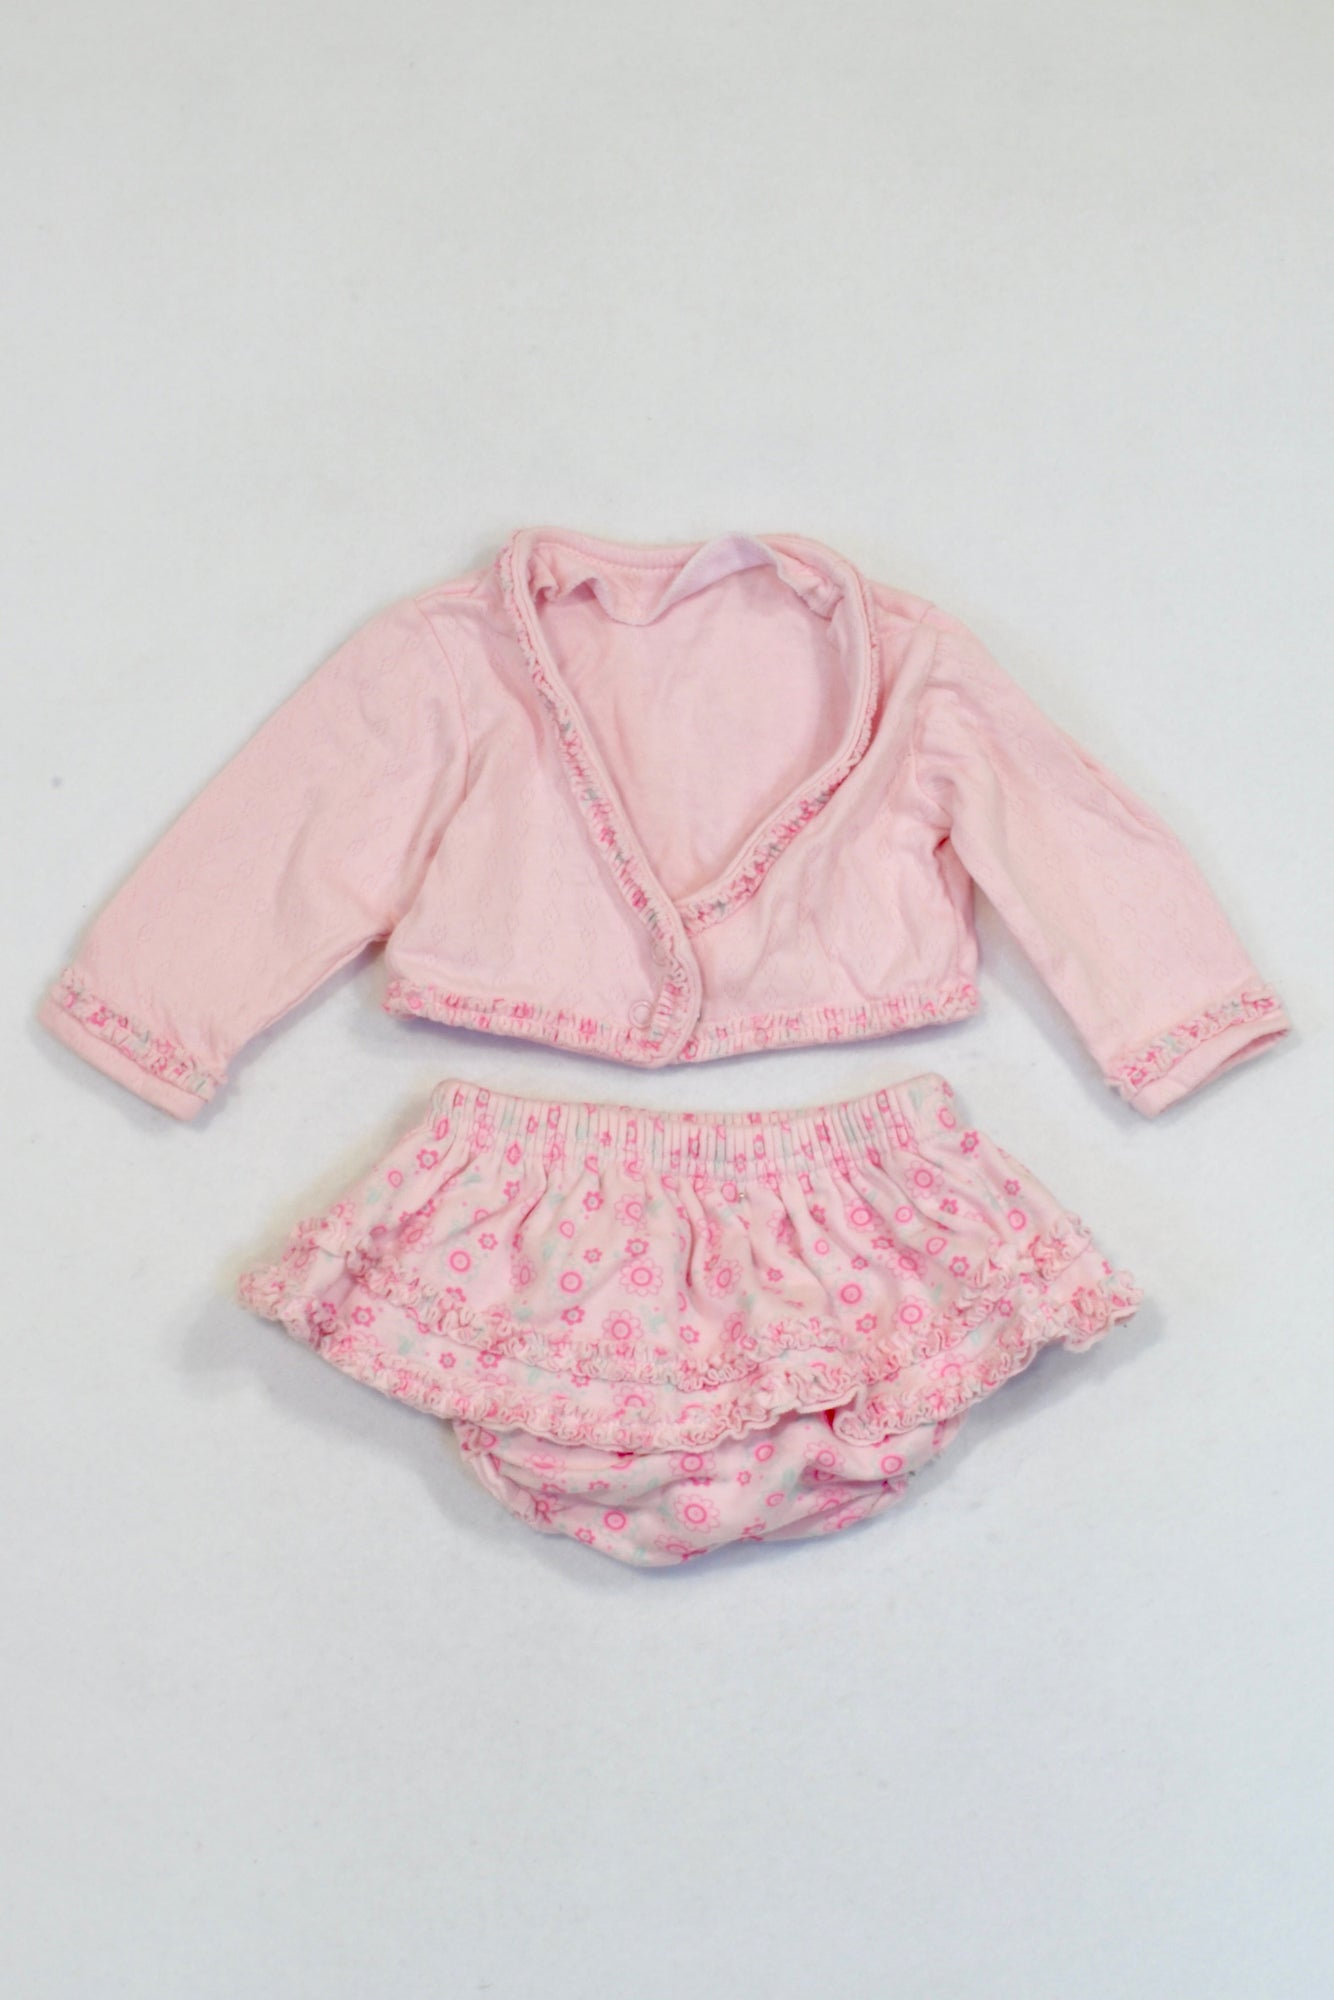 Woolworths Pink Floral Ruffle Cardigan & Bloomers Outfit Girls 0-3 months